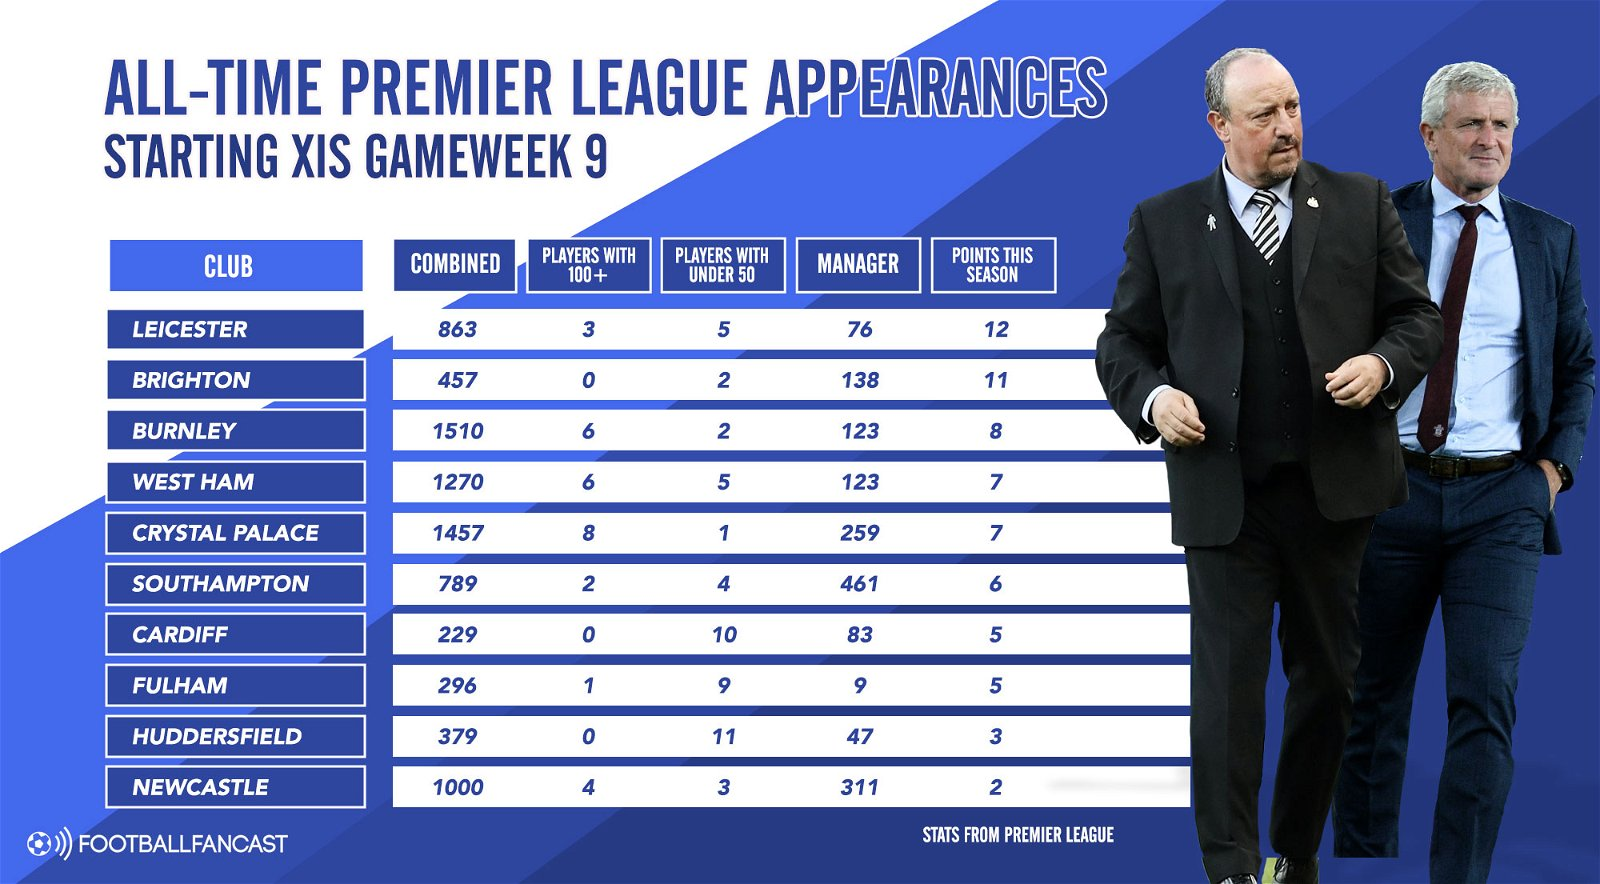 Premier League experience in the bottom half